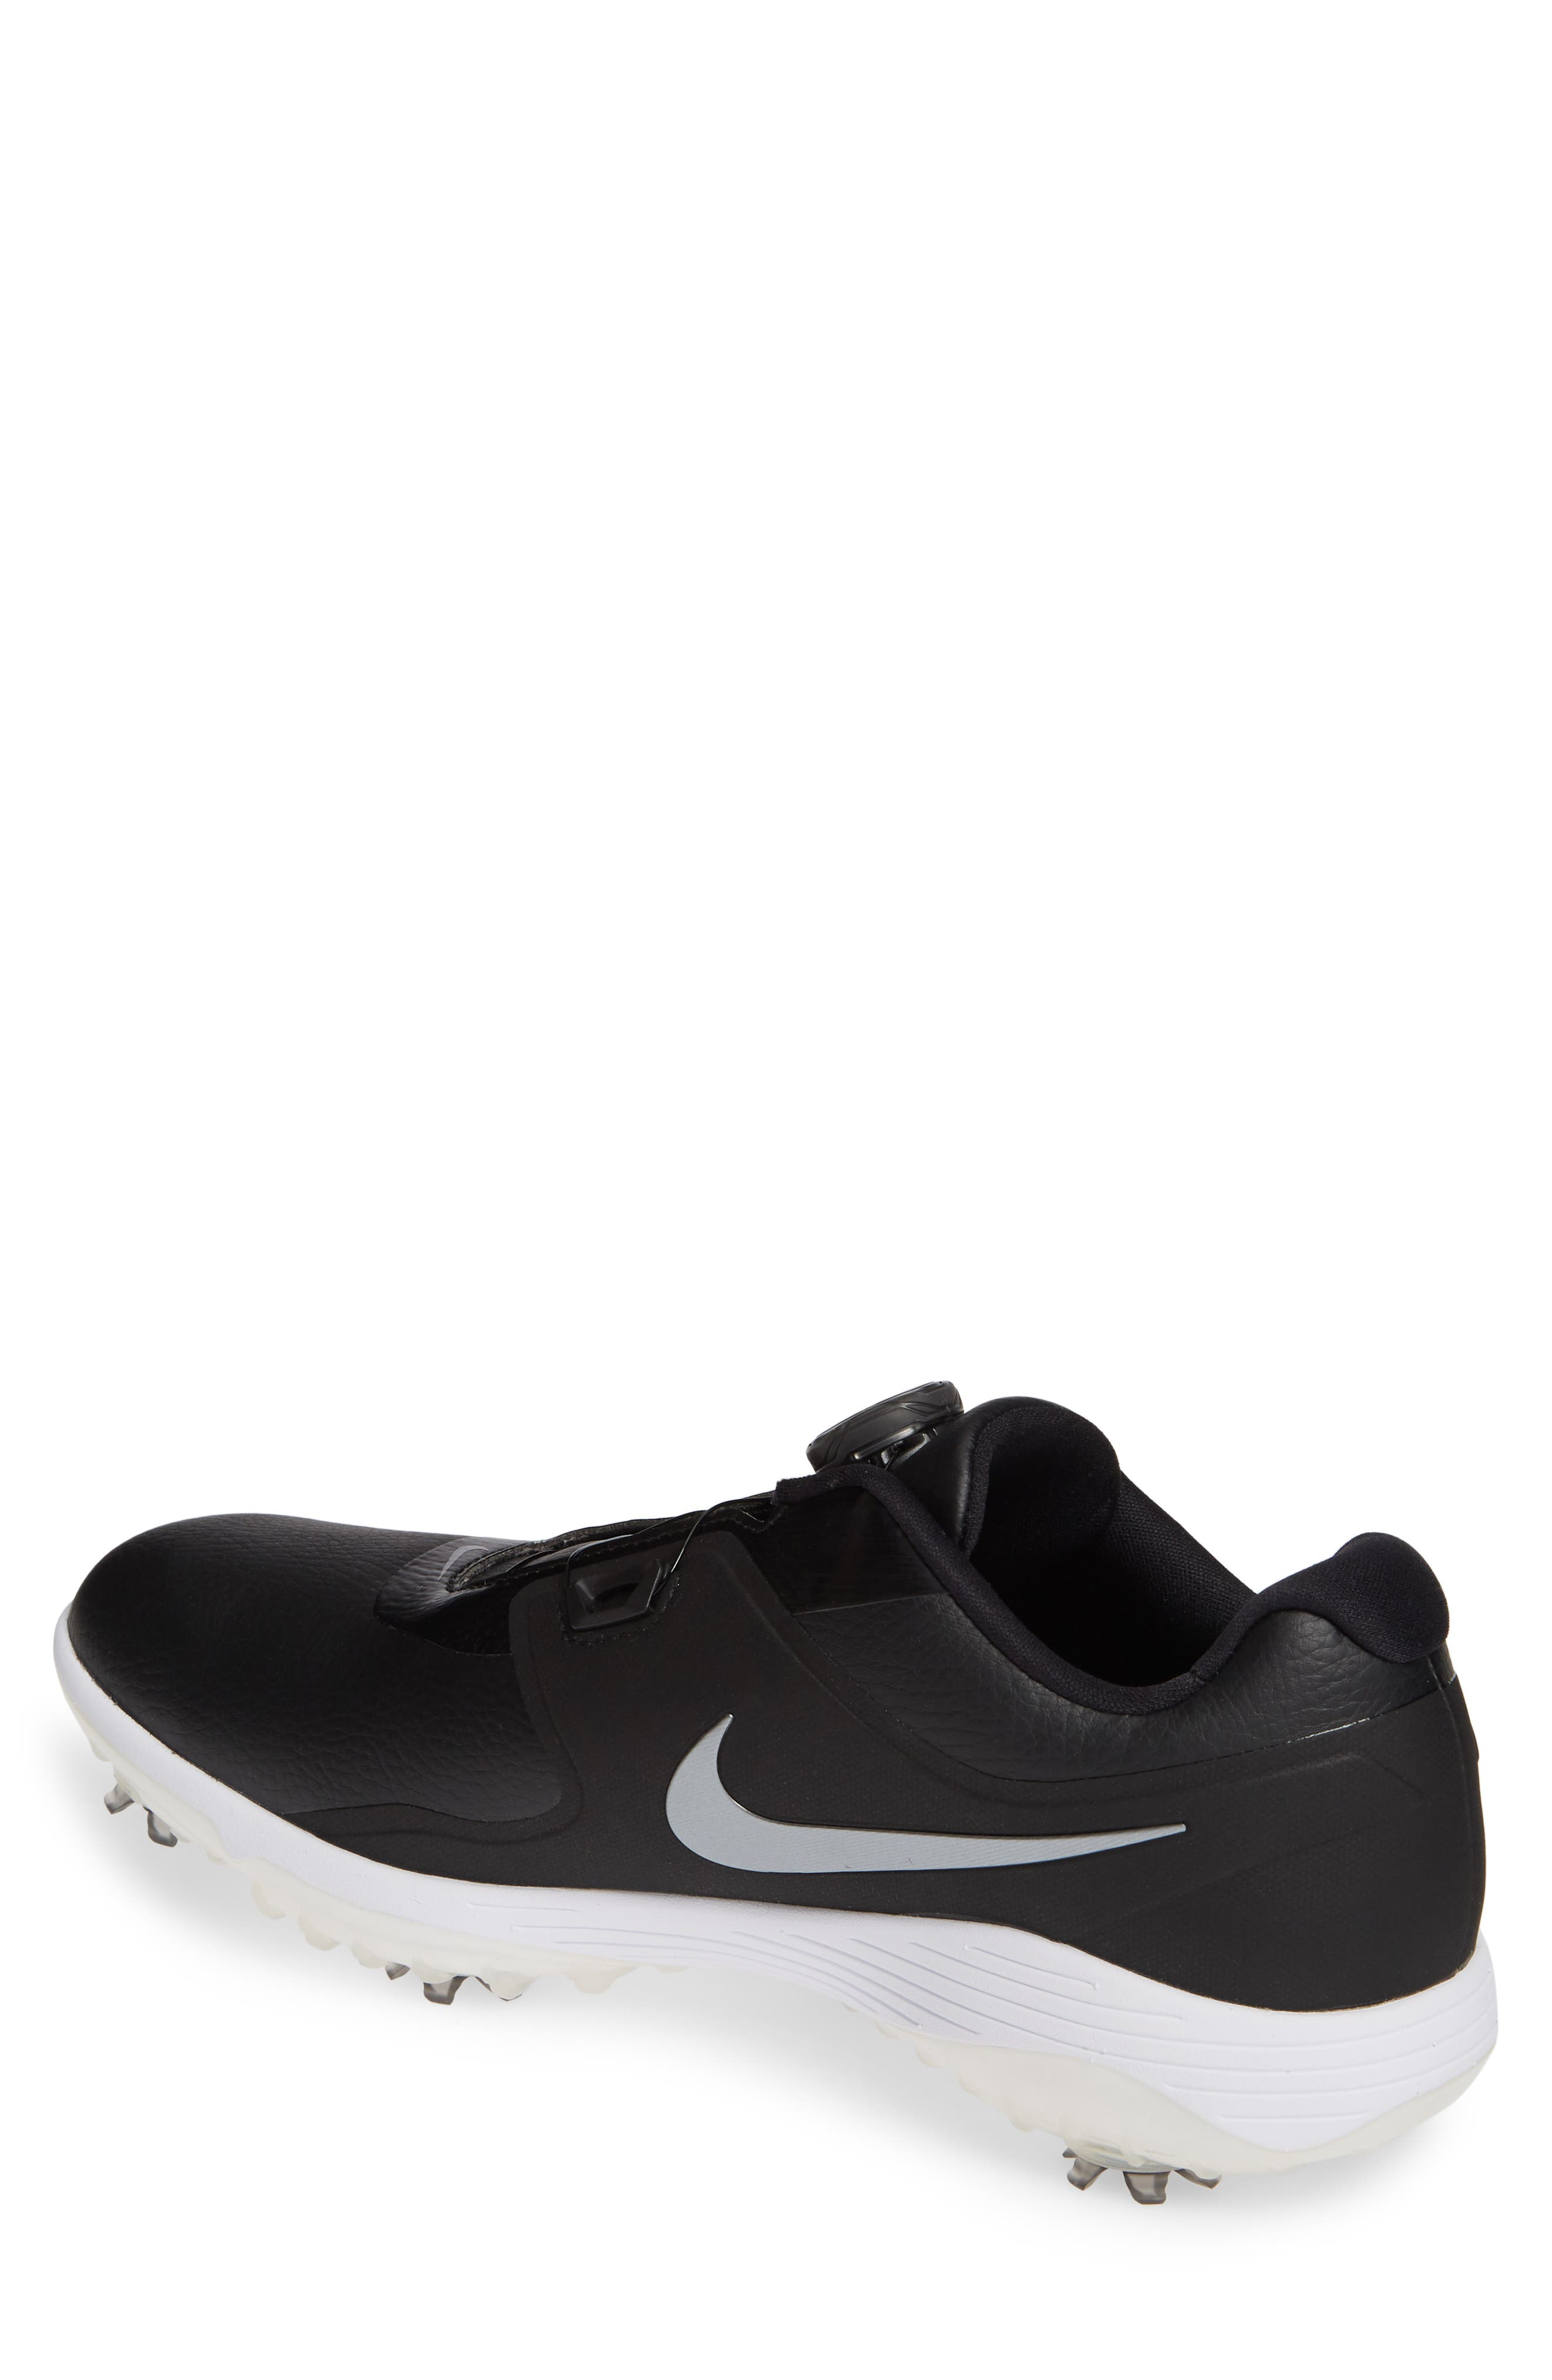 NIKE,                             Vapor Pro BOA Waterproof Golf Shoe,                             Alternate thumbnail 2, color,                             BLACK/ COOL GREY/ WHITE